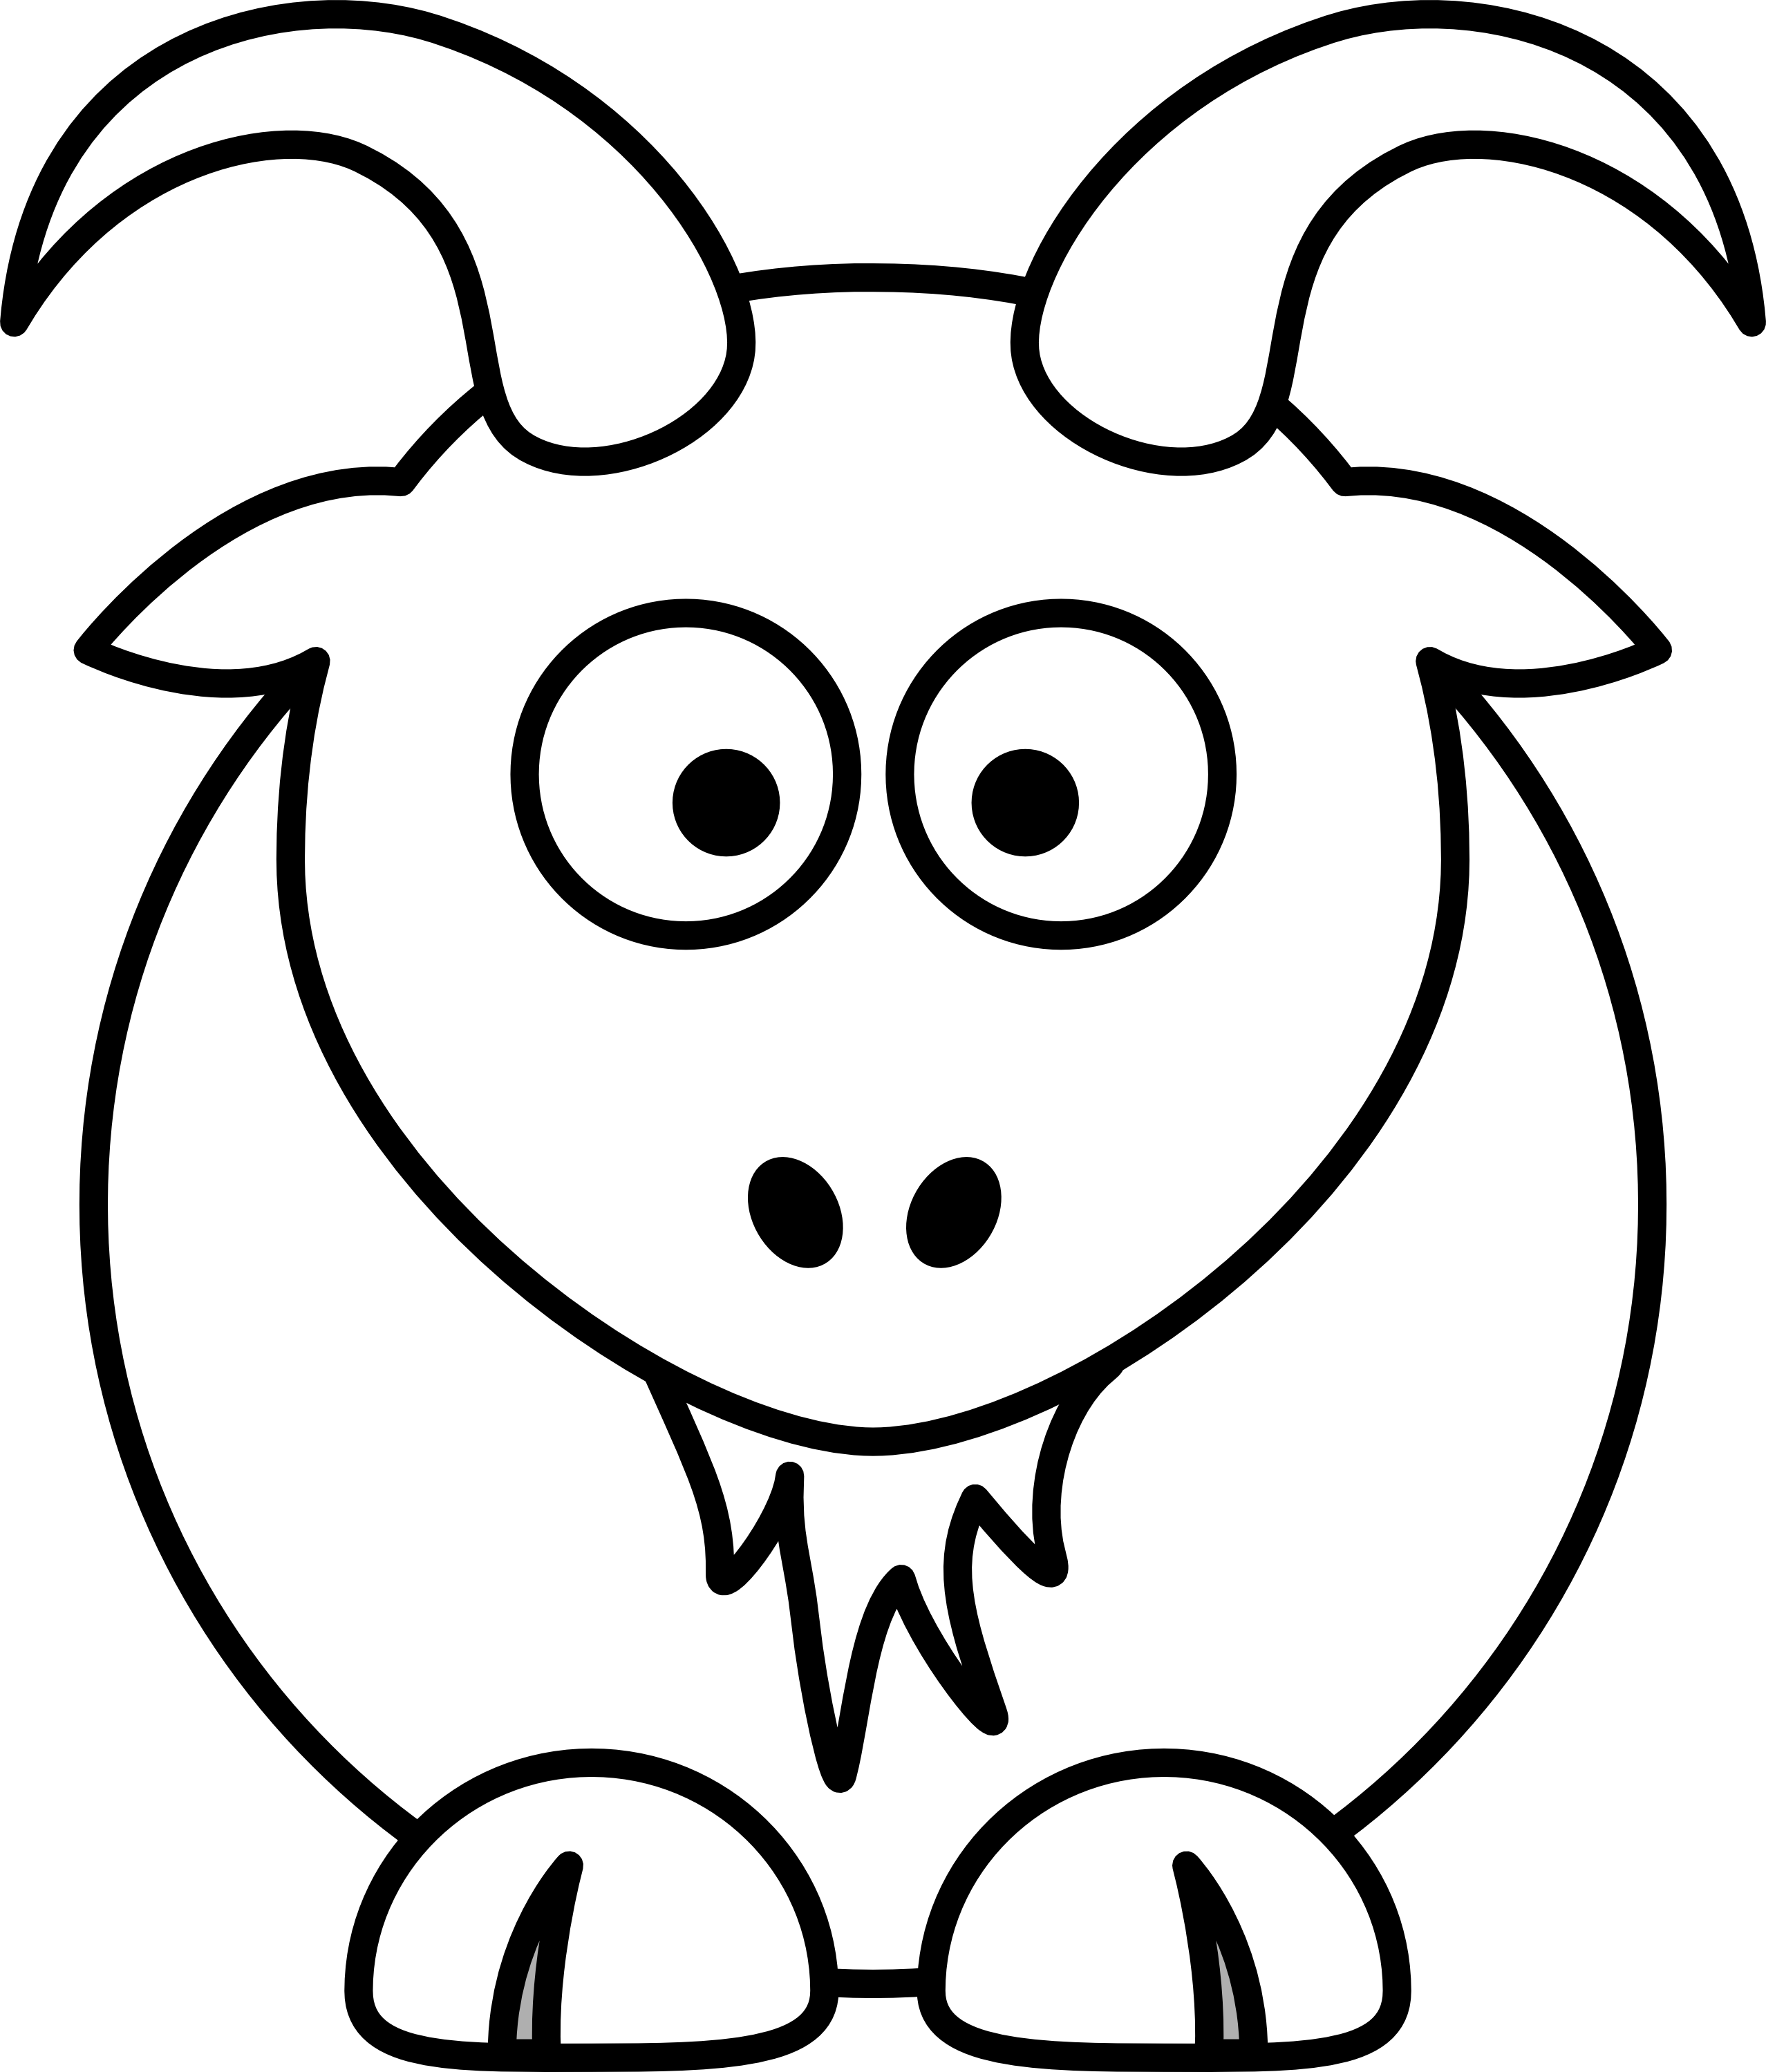 Black Line Drawings Of Animals : Net clip art black and white clipart panda free